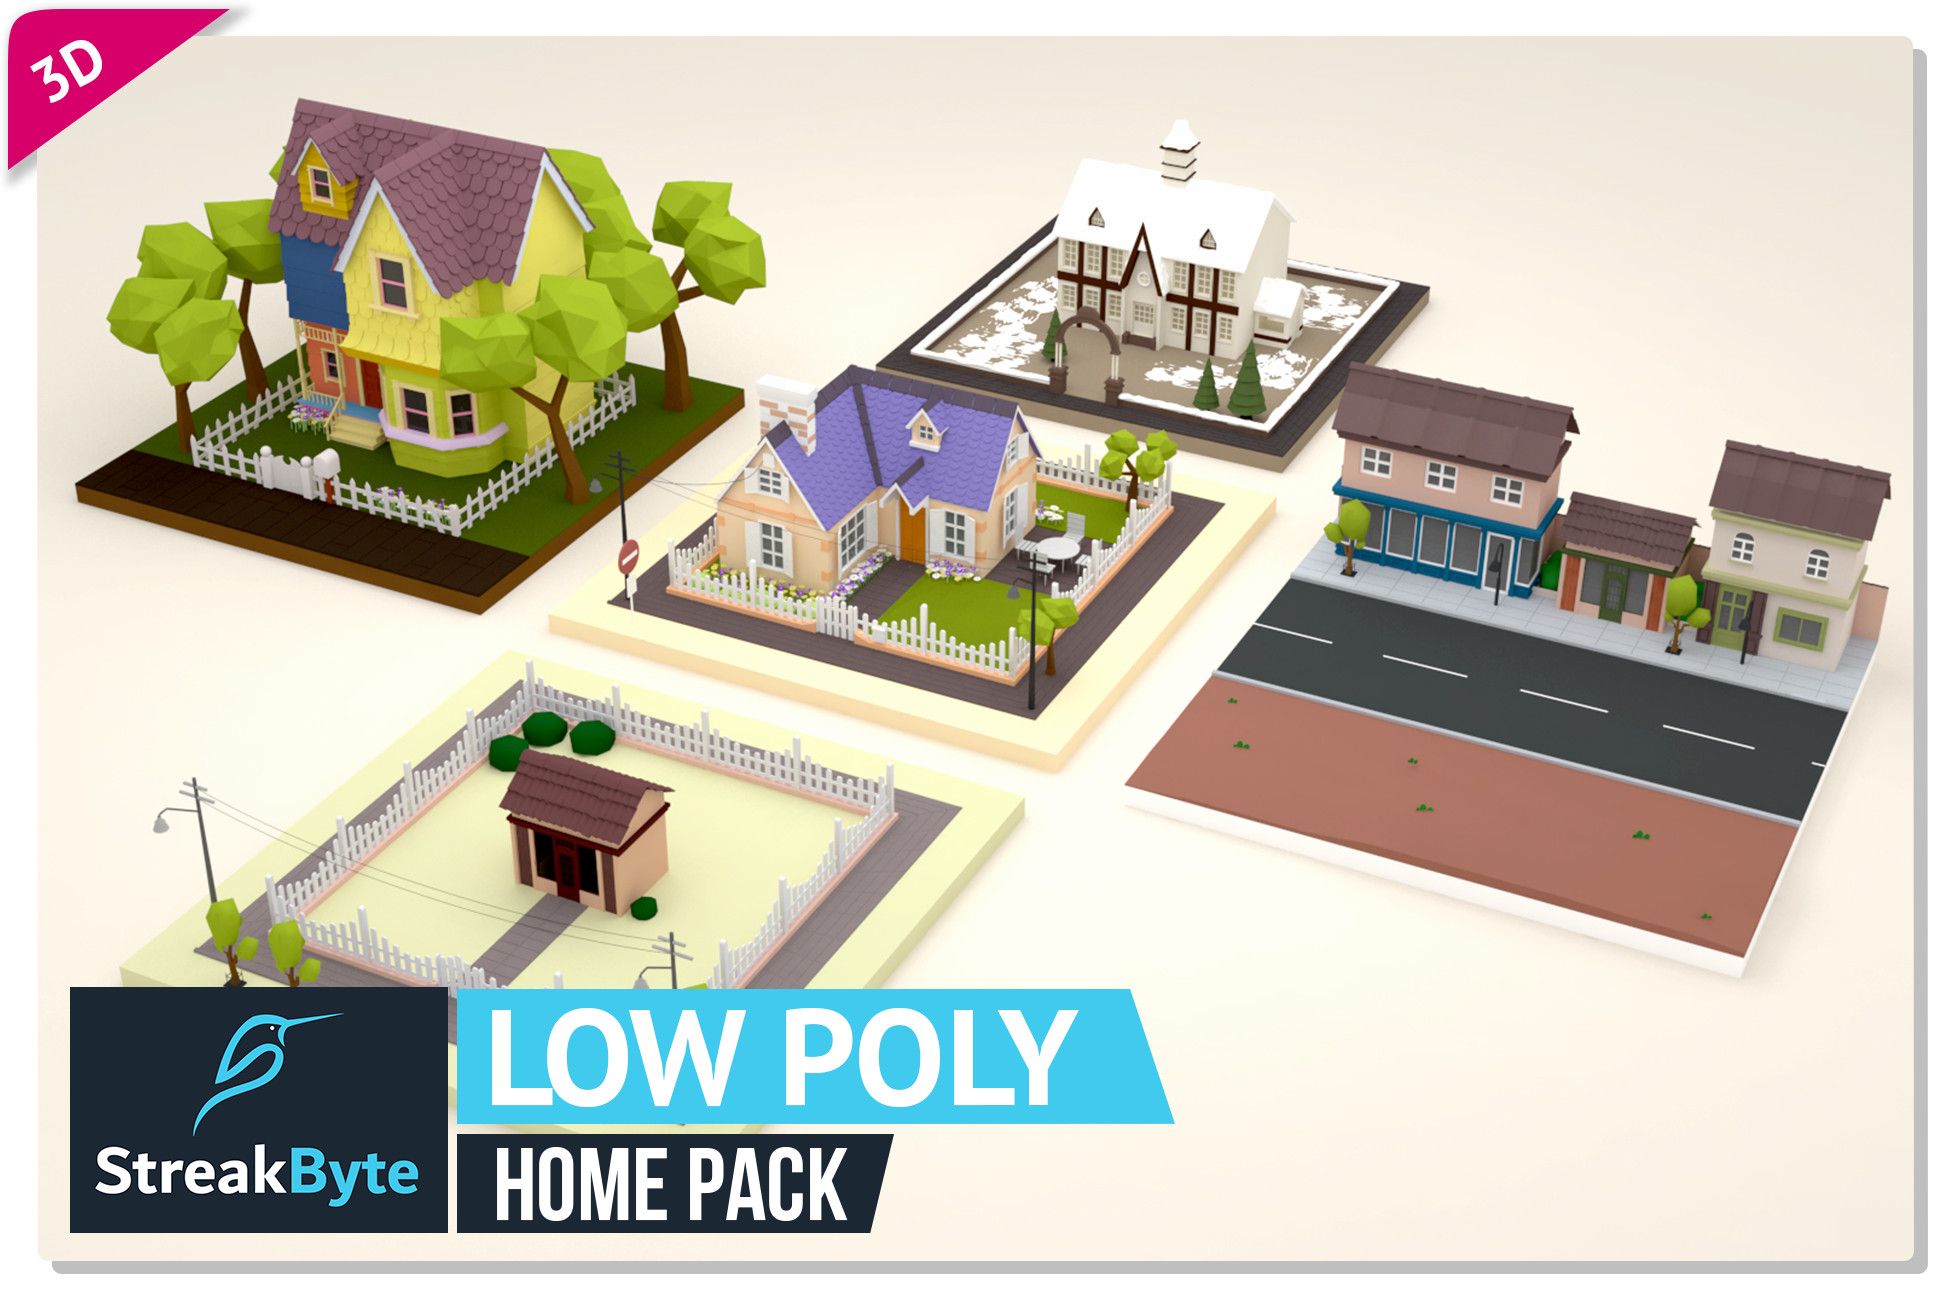 Low Poly Ultimate Home Pack